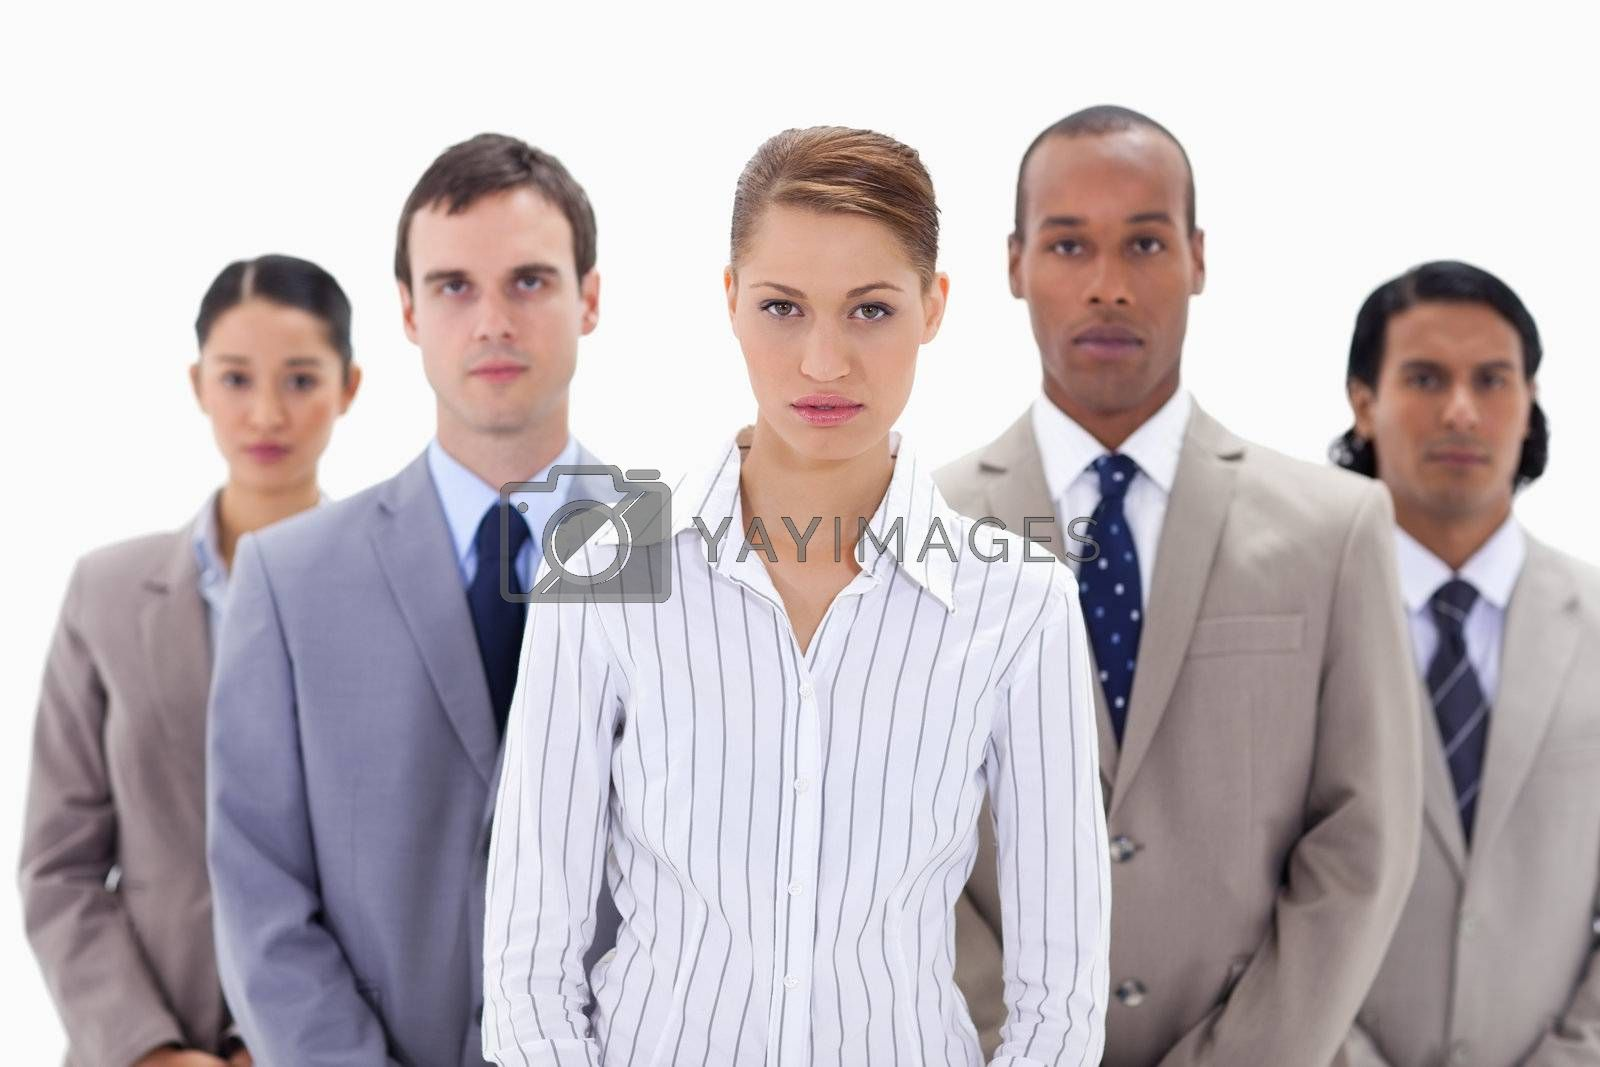 Close-up of a serious business team with focus on the woman in the center